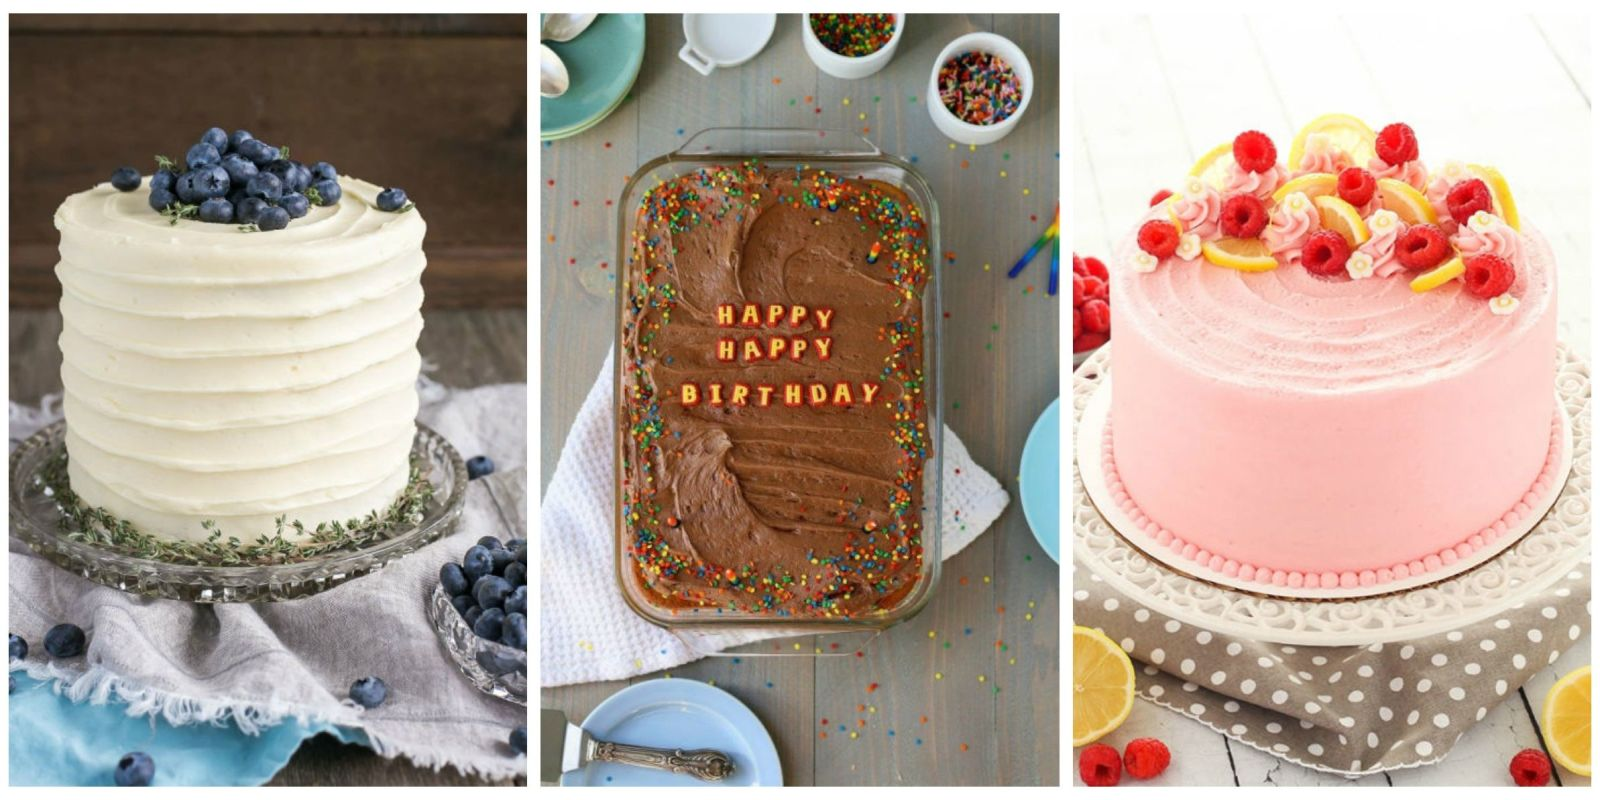 22 Homemade Birthday Cake Ideas - Easy Recipes for ...